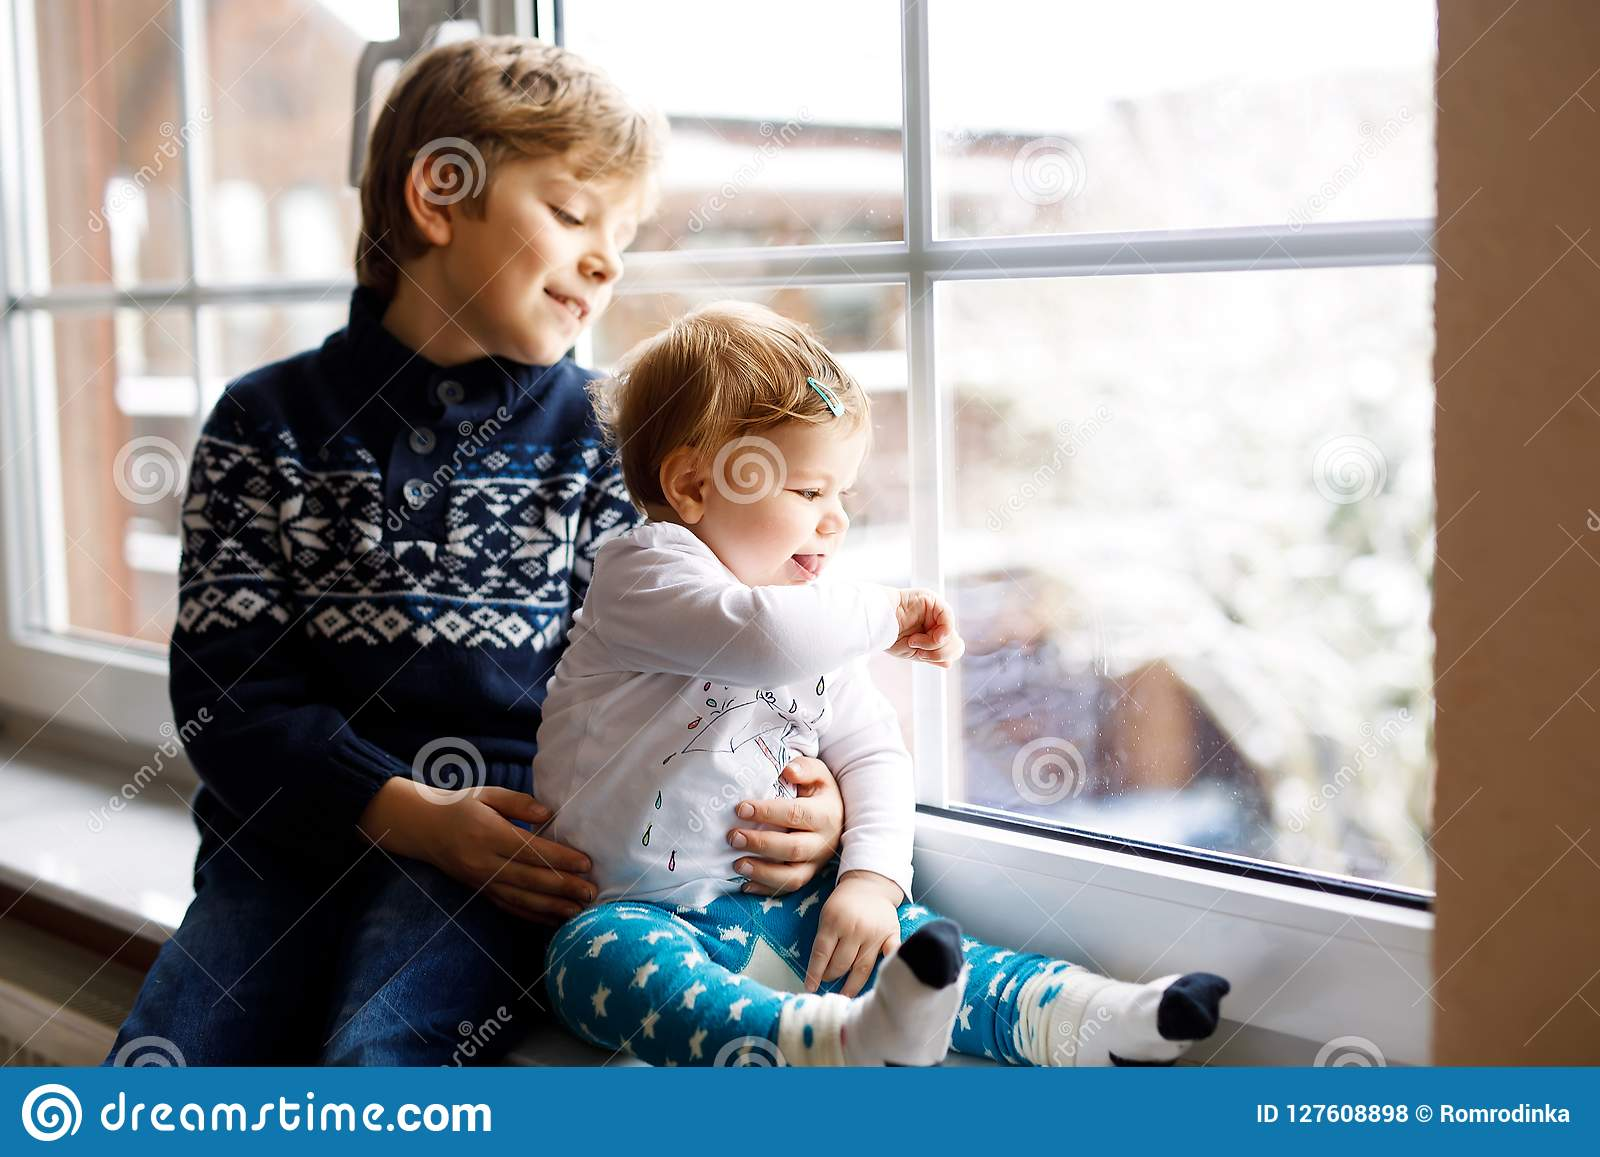 15a58416b Happy Adorable Kid Boy And Cute Baby Girl Sitting Near Window And ...